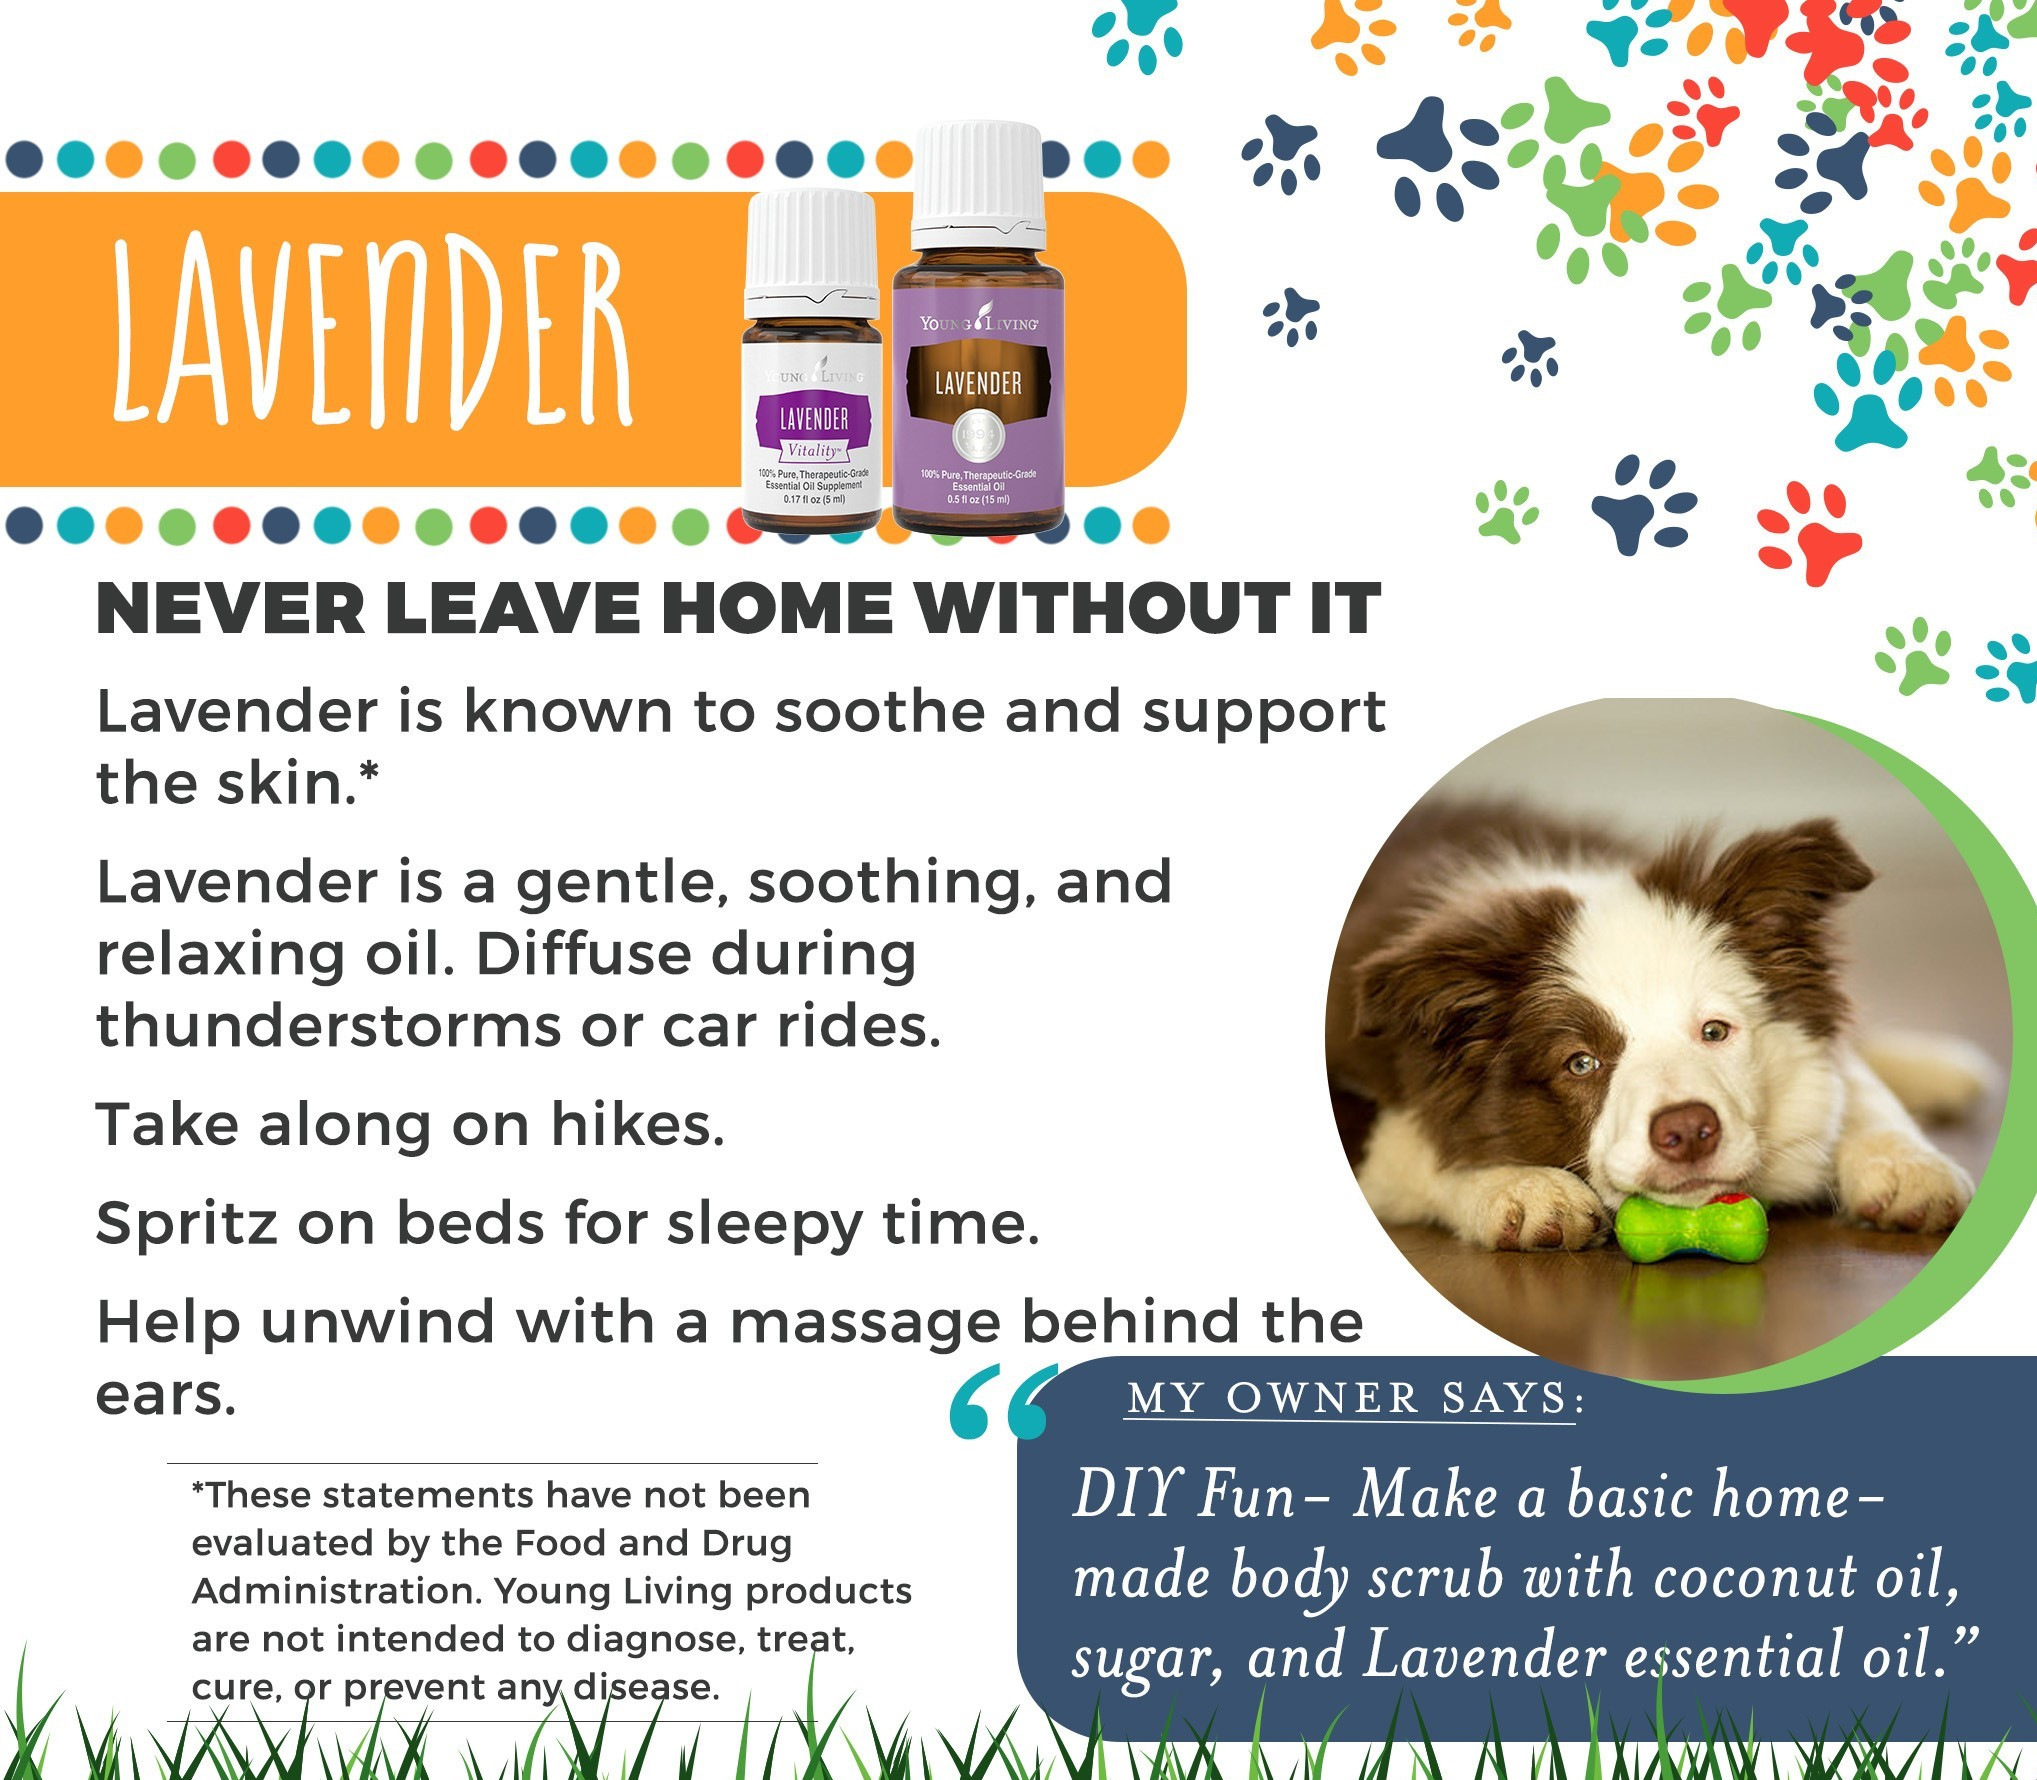 Young Living's Lavender is registered as a NHP by Health Canada.     In Aromatherapy can be used topically:  • to help relieve joint or muscle pain associated with sprains, strains & rheumatoid arthritis  • or inhaled can act as a nervine and calmative which enhances relaxation  • or inhaled to reduce the symptoms of cold & cough  • when experiencing digestive discomfort can act as a carminative and antispasmodic  • to help relieve headache    Try applying topically when needed.